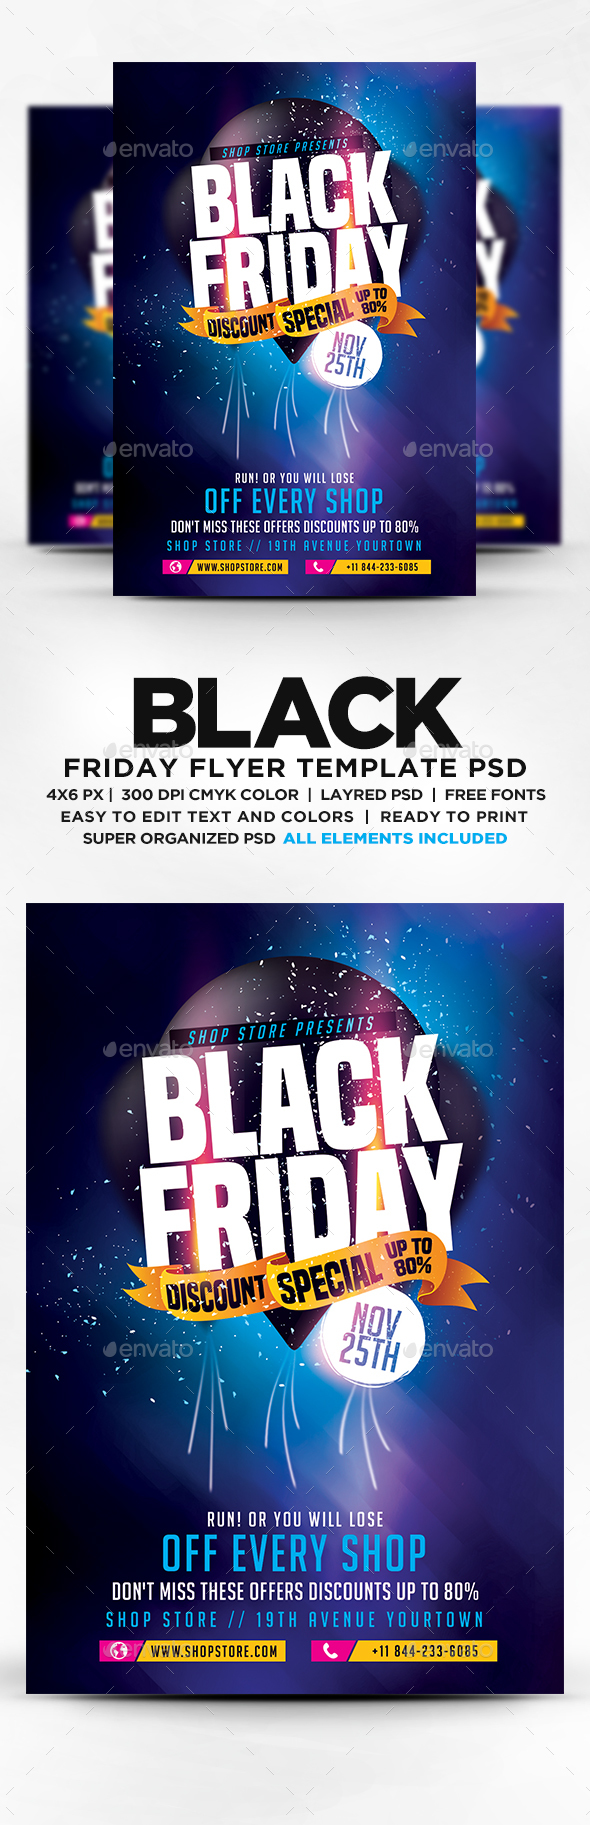 Black Friday Sales Flyer PSD Template Promote Postcard - Sales flyer template photoshop